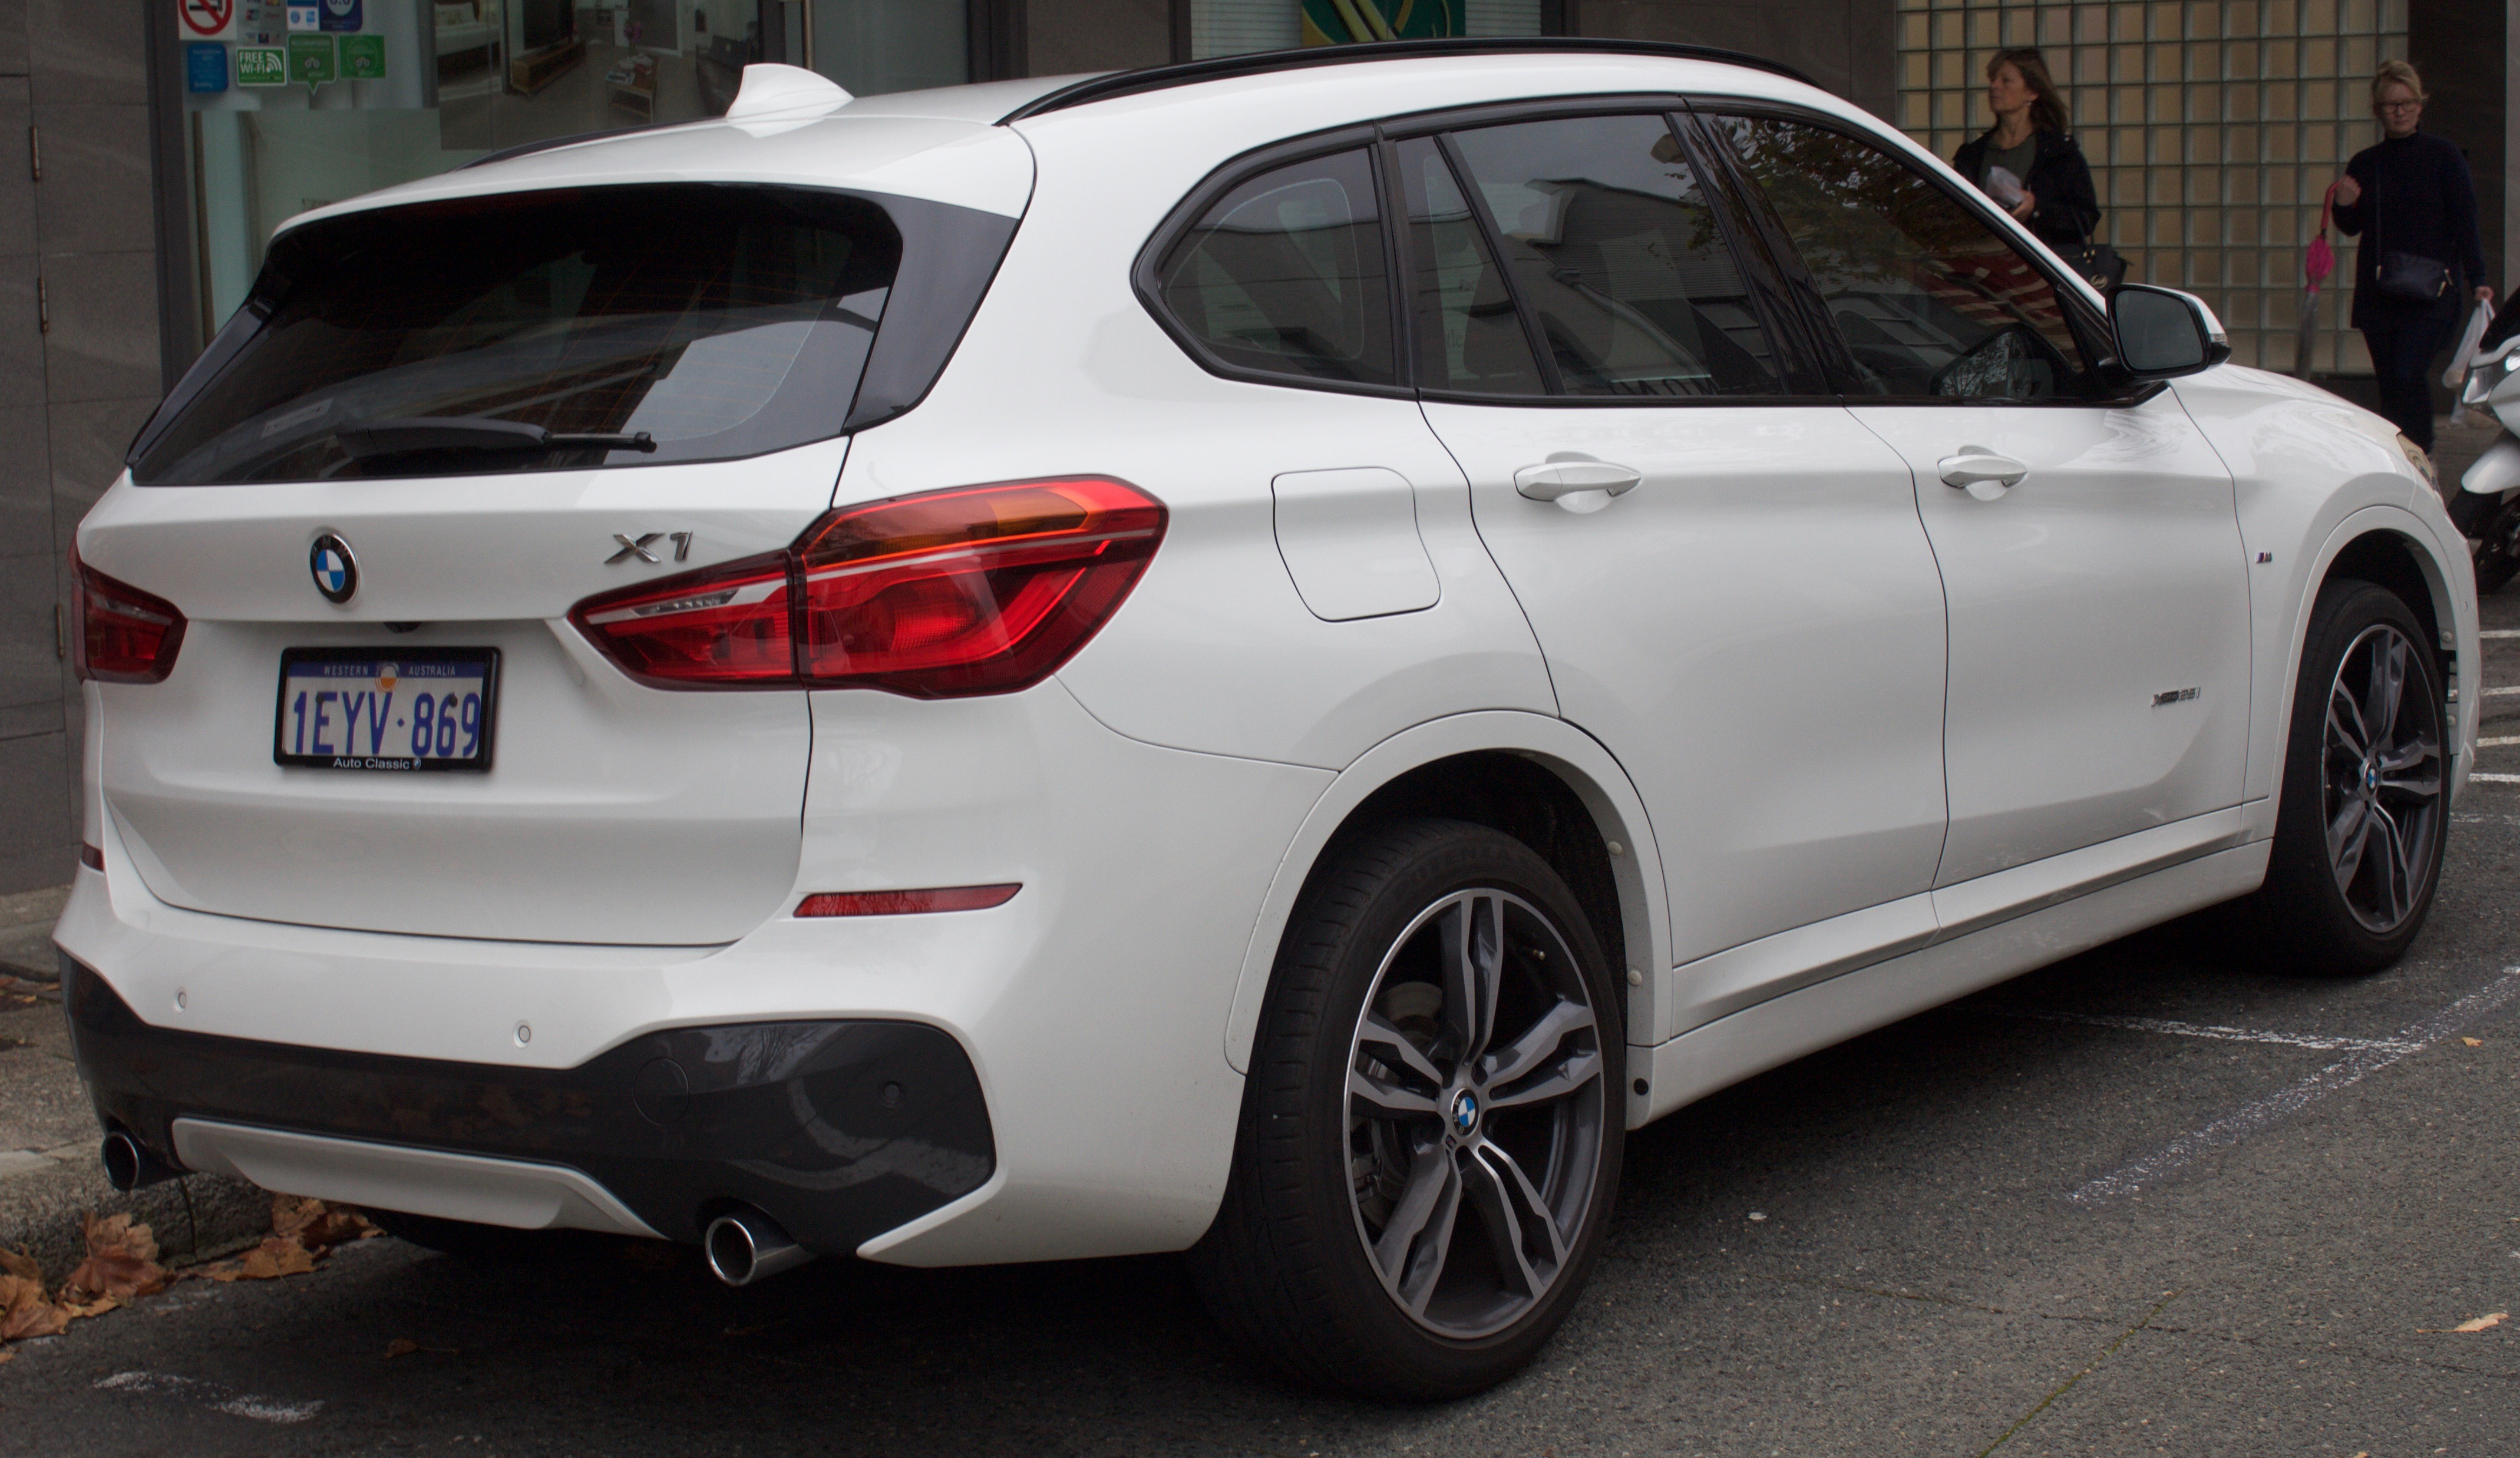 2016_BMW_X1_%28F84%29_xDrive25i_wagon_%282017 07 15%29_02 bmw x1 wikipedia  at metegol.co